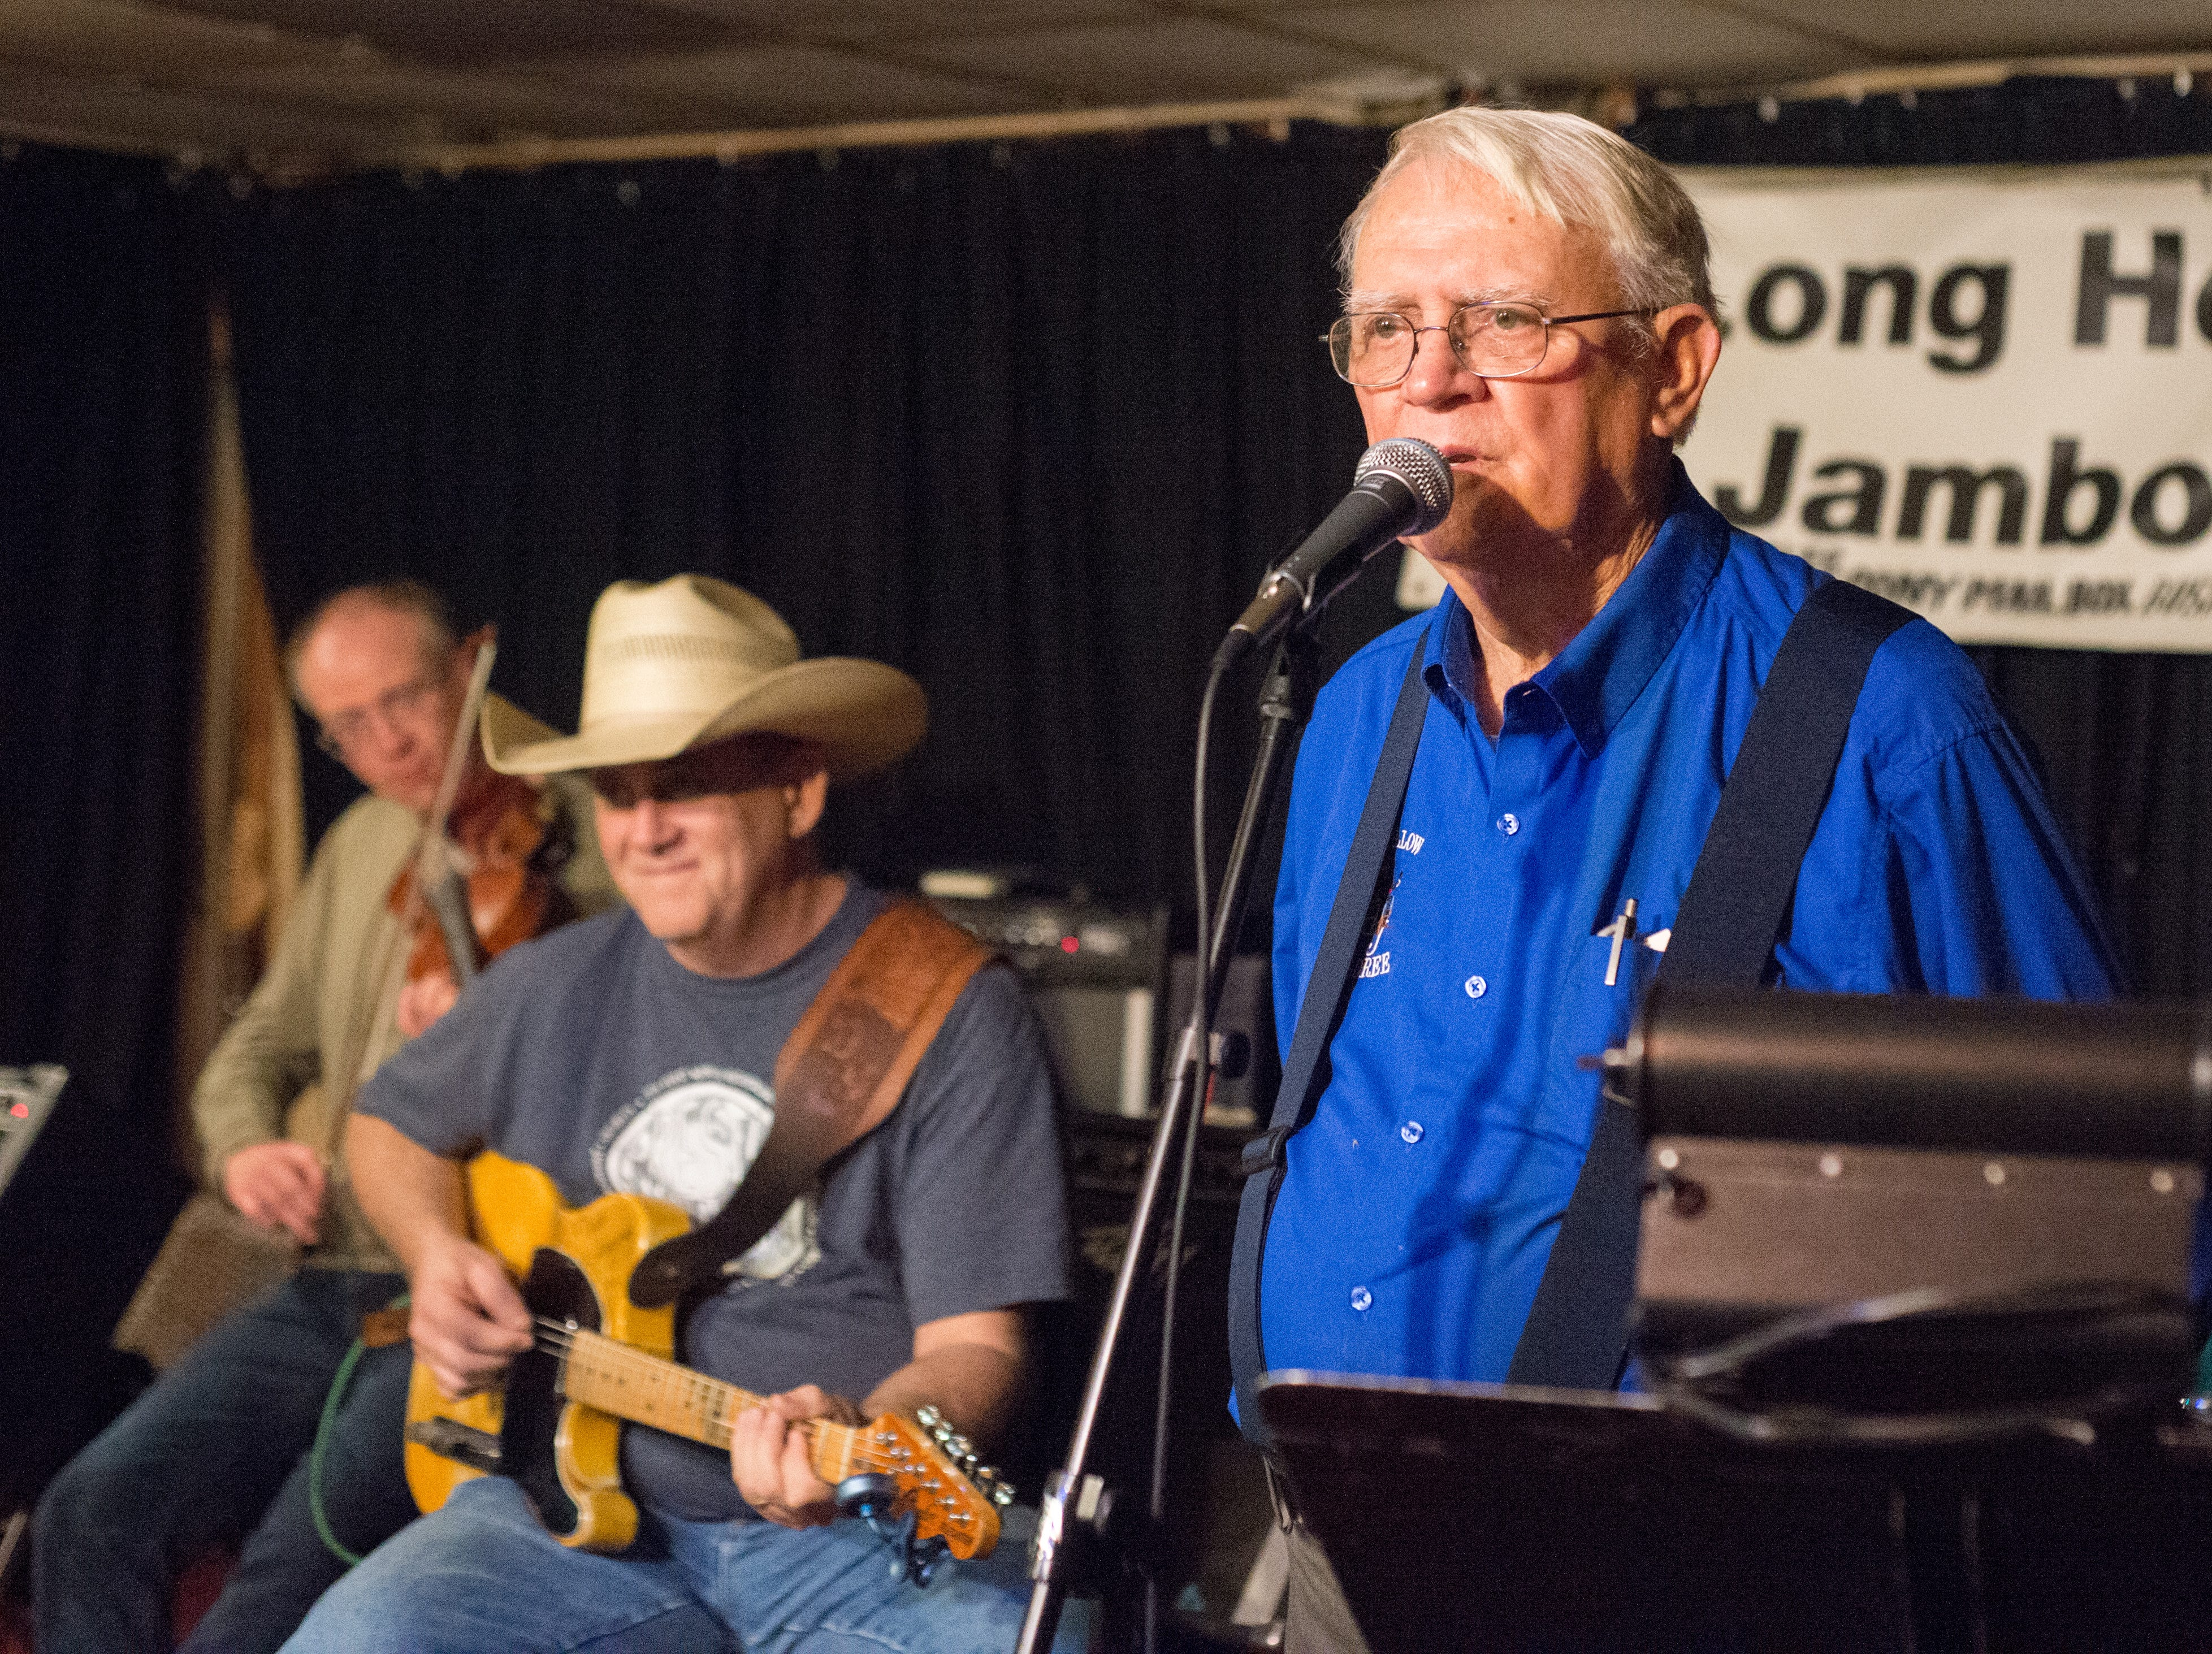 Eugene Hardison calls a dance at Long Hollow Jamboree in Goodlettsville on Saturday, April 7.